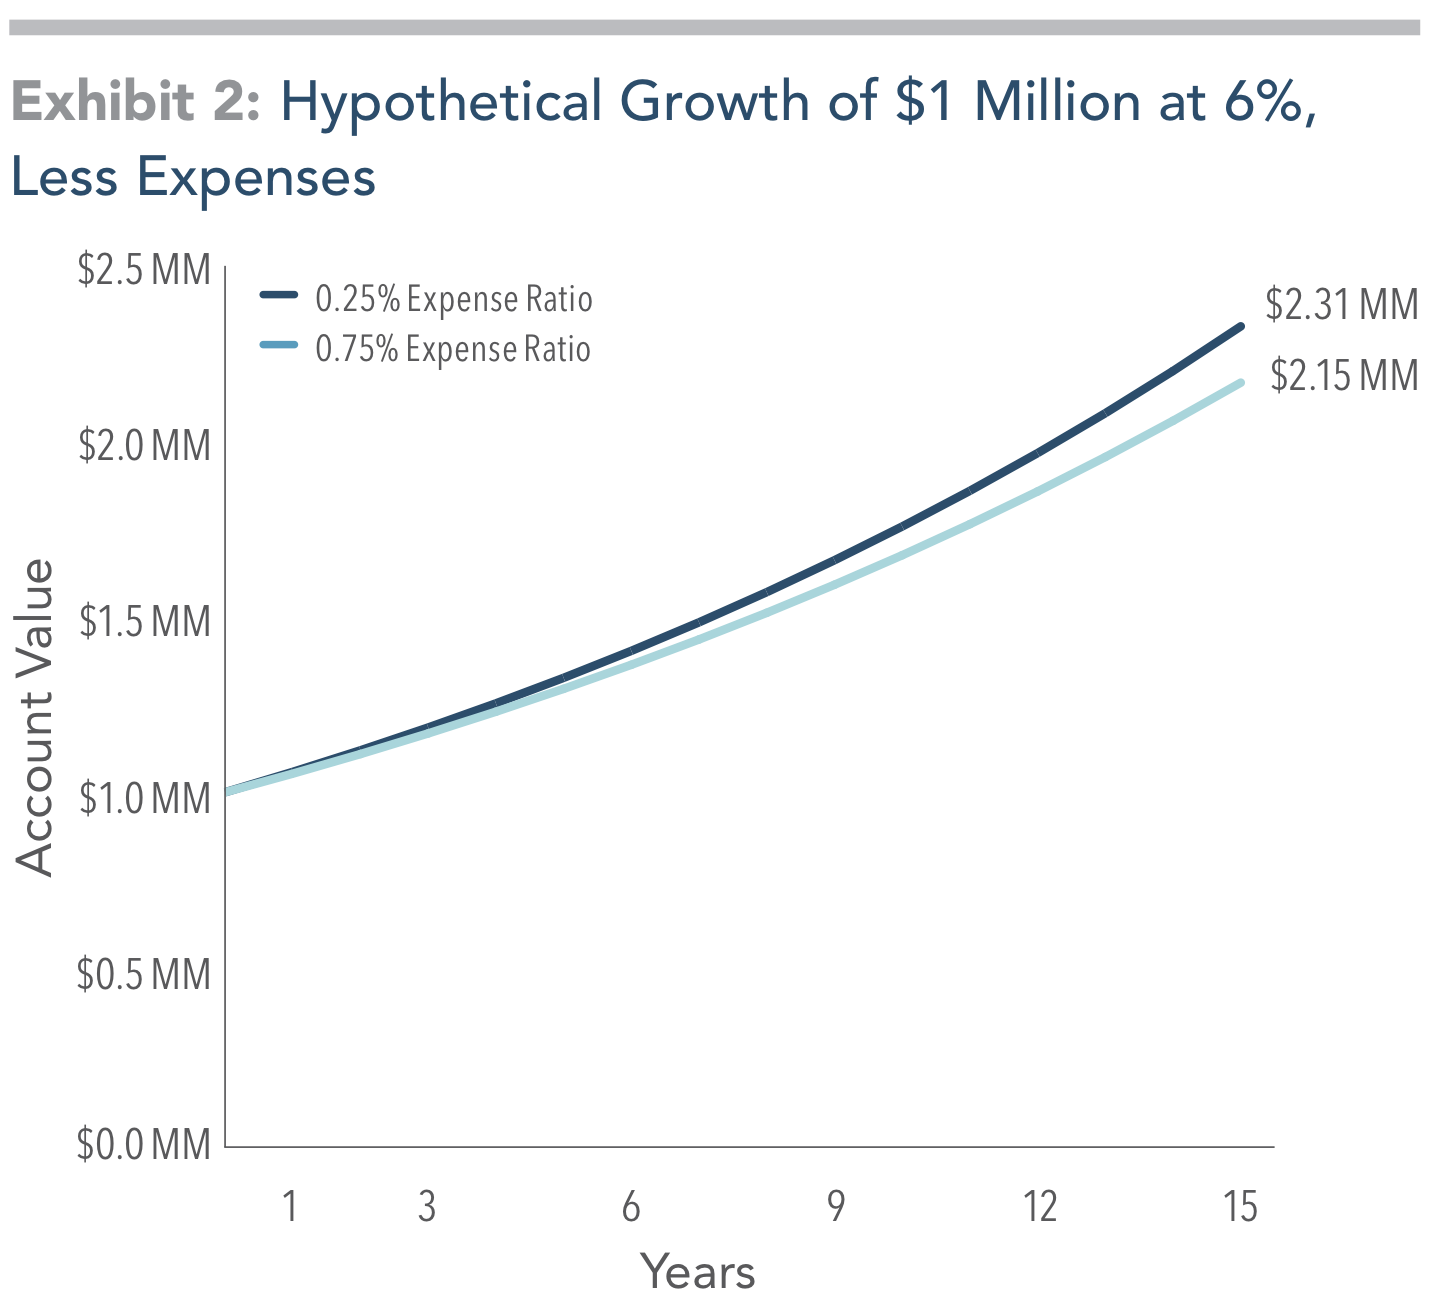 For illustrative purposes only and not representative of an actual investment. This hypothetical illustration is intended to show the potential impact of higher expense ratios and does not represent any investor's actual experience. Assumes a starting account balance of $1,000,000 and a 6% compound annual growth rate less expense ratios of 0.25% and 0.75% applied over a 15-year time horizon. Taxes and other potential costs are not reflected. Actual results may vary significantly. Changing the assumptions would result in different outcomes. For example, the savings and difference between the ending account balances would be lower if the starting investment amount was lower.